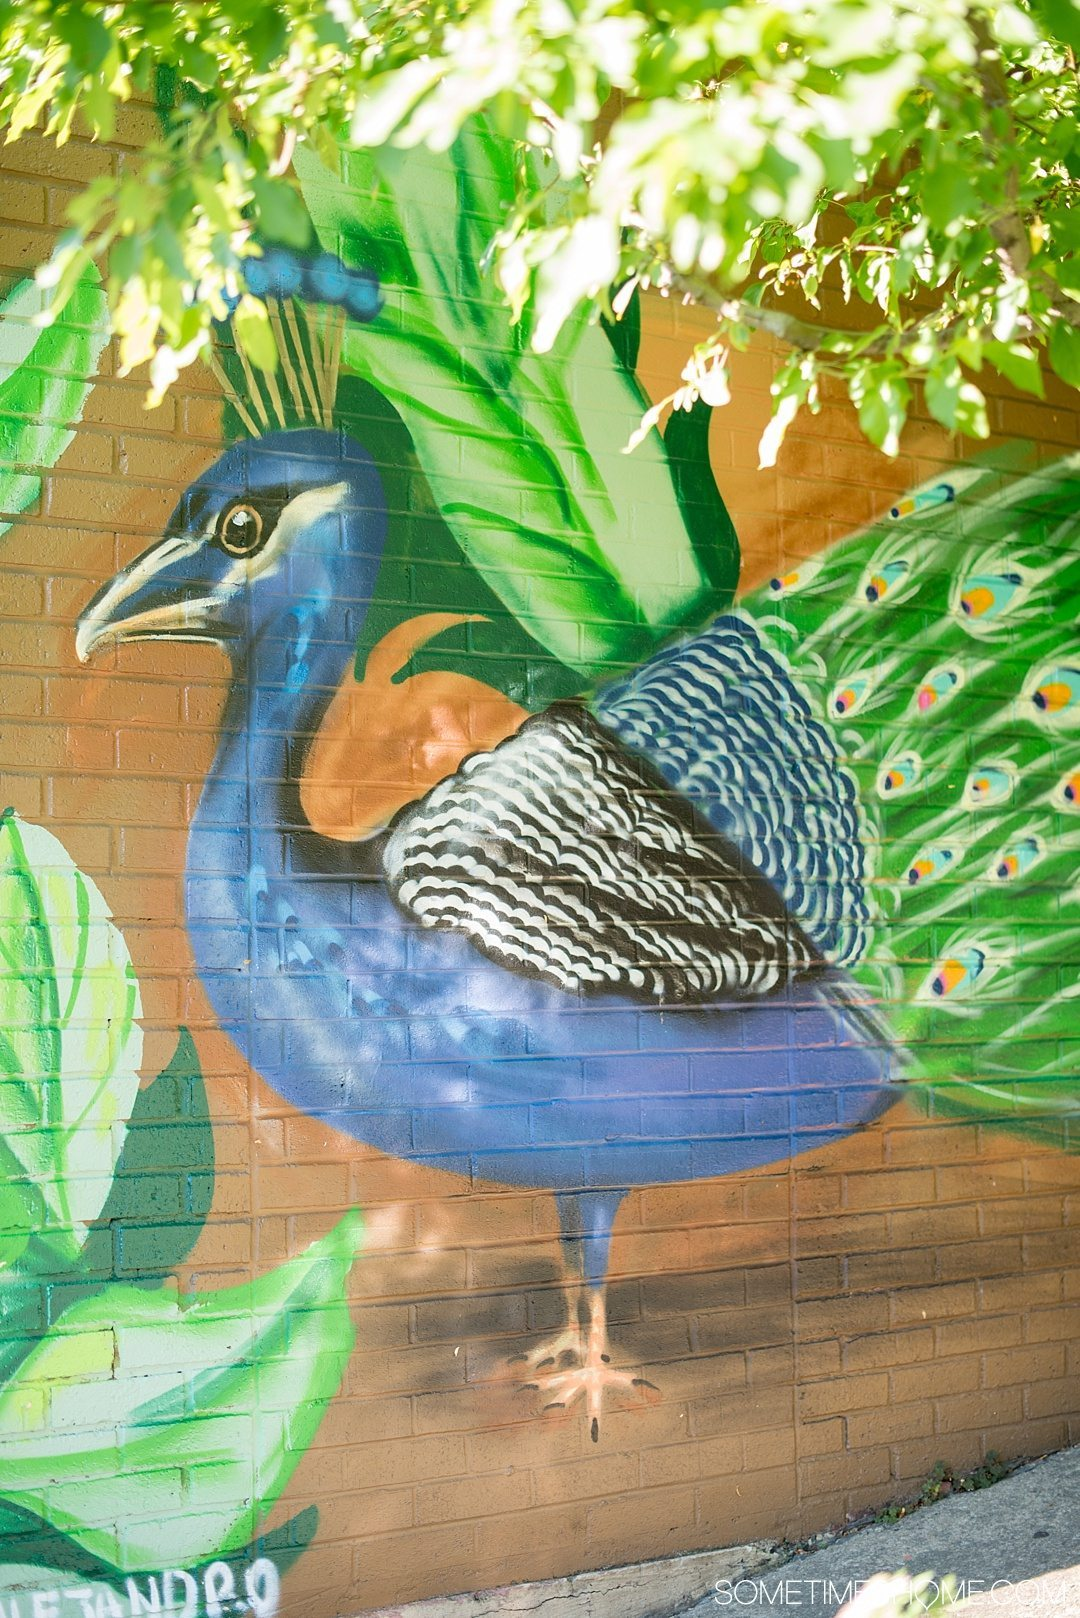 Why a Trip to Buffalo Had Me in Disbelief on Sometimes Home travel blog. Photo of a peacock mural in the city's downtown area of Allentown.